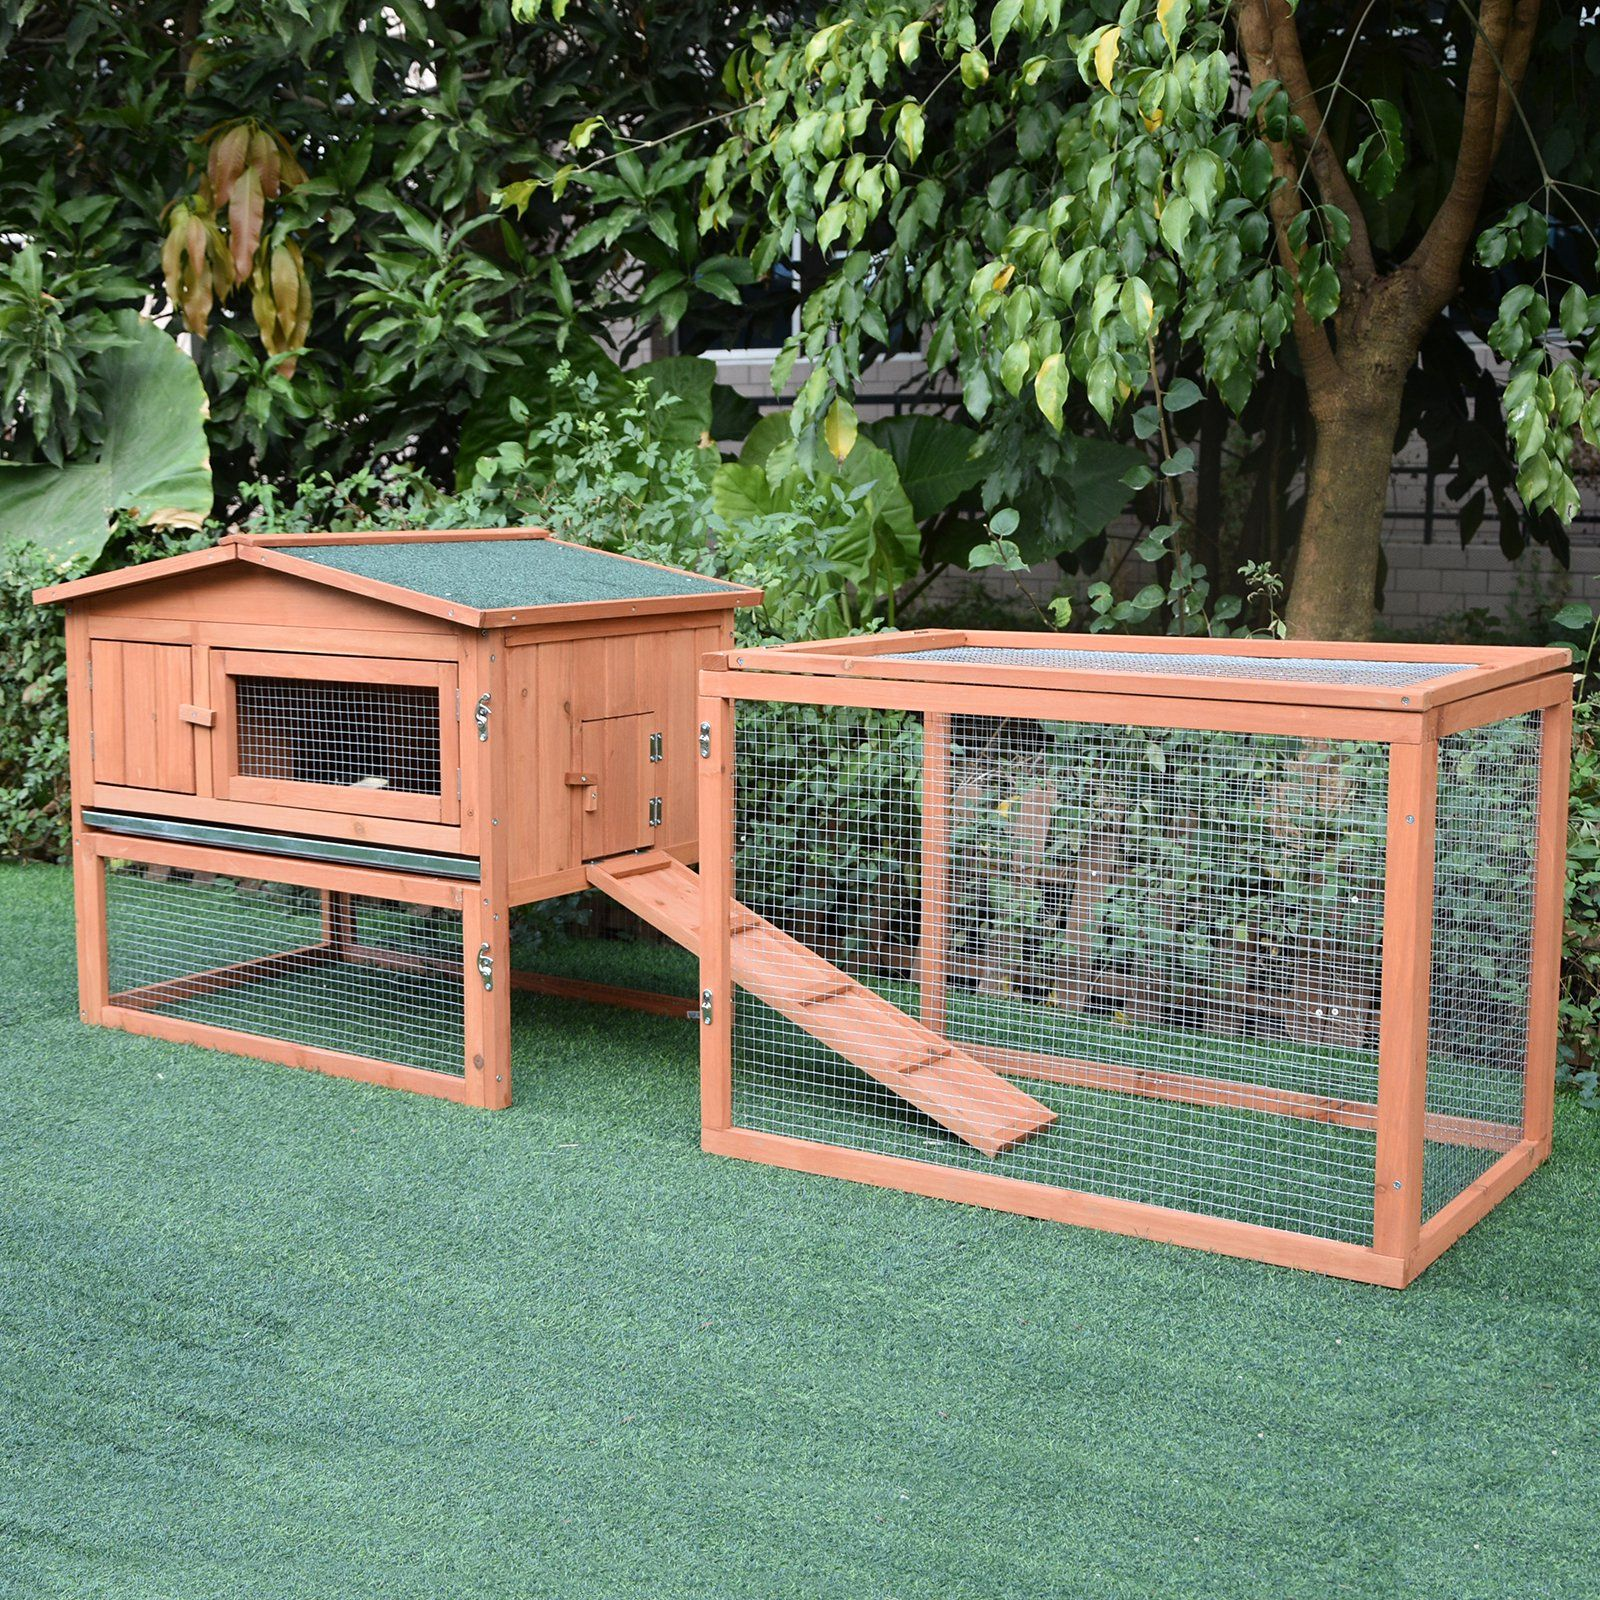 Pets In 2020 Bunny Cages Rabbit Hutches Small Pets